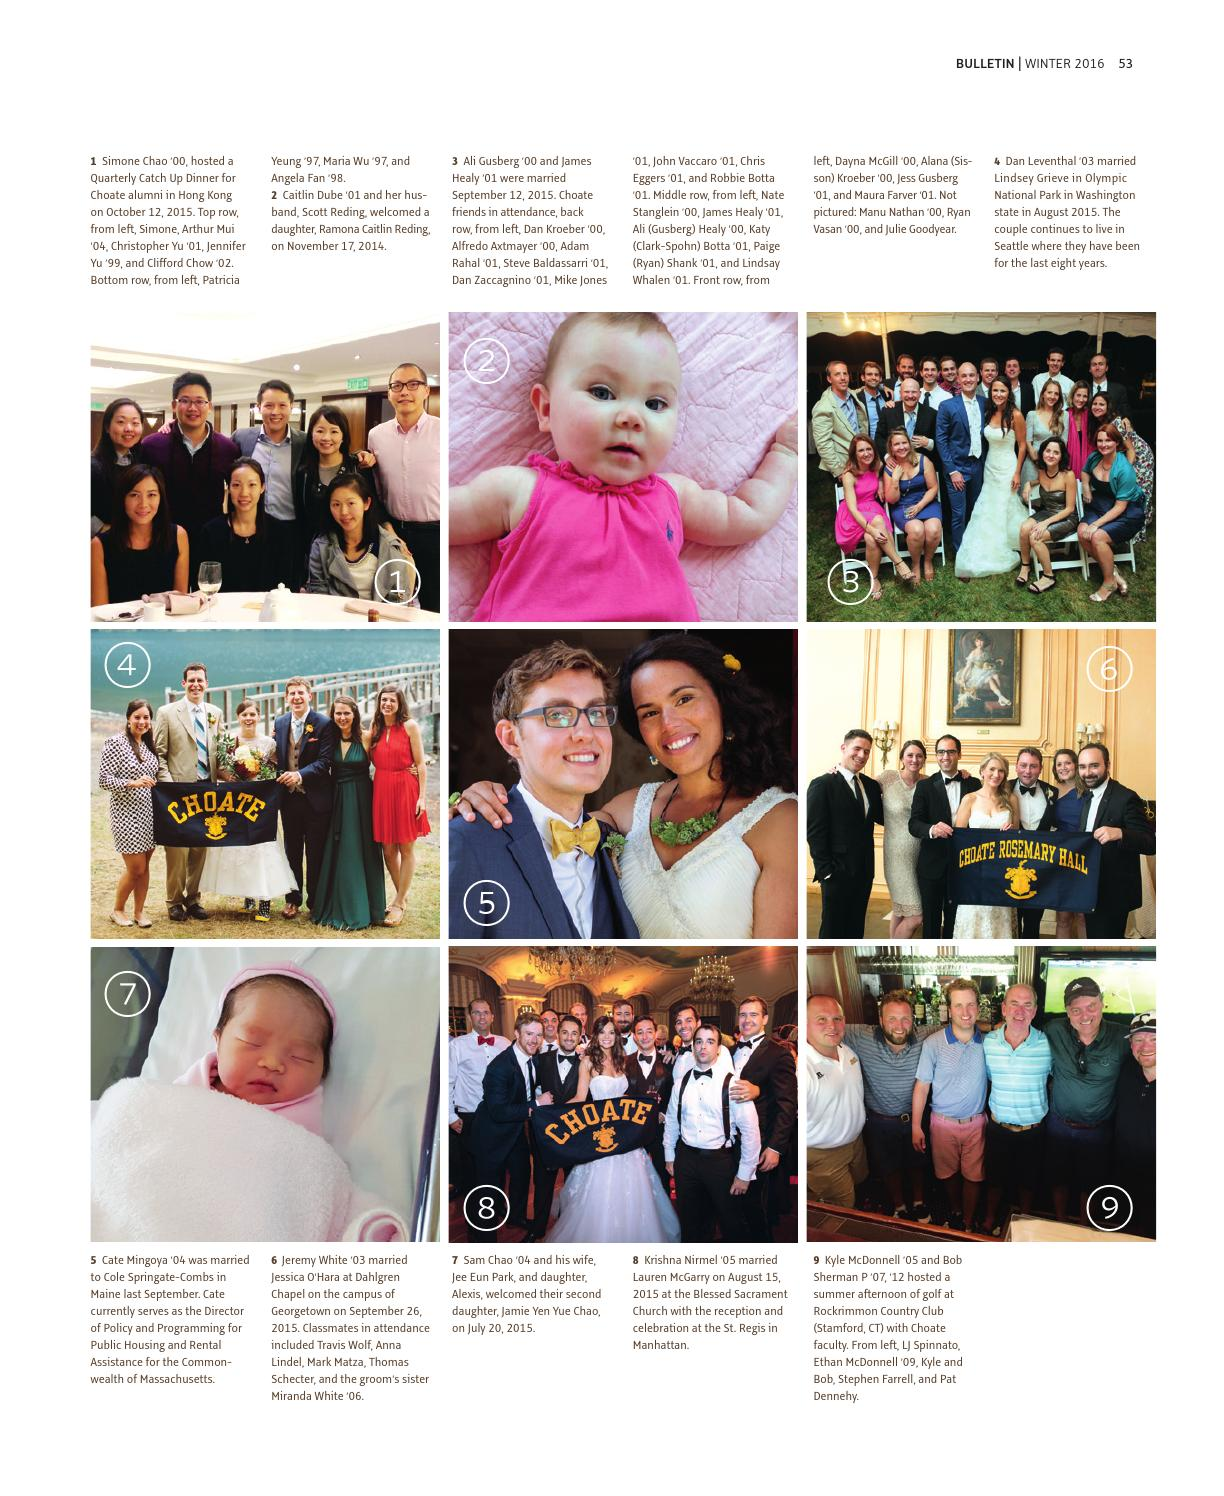 Choate Rosemary Hall Bulletin | Winter '16 by Choate